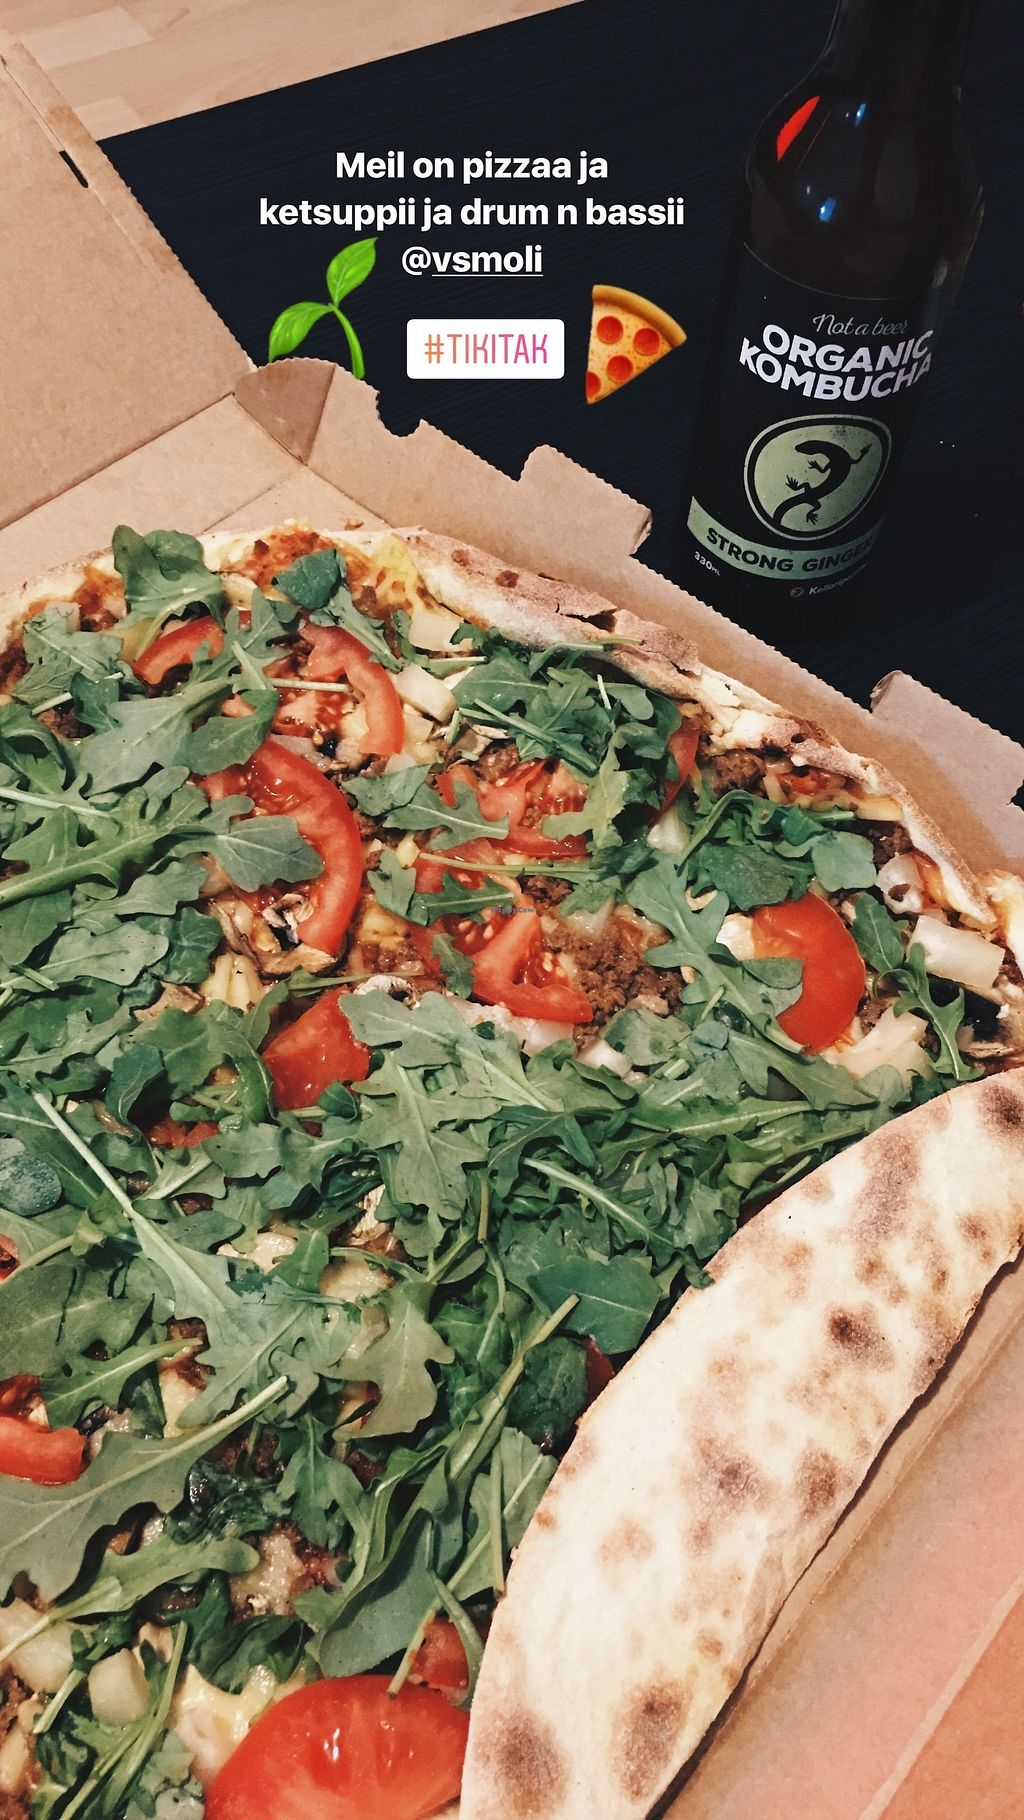 """Photo of Tikitak  by <a href=""""/members/profile/Sara_Aurora"""">Sara_Aurora</a> <br/>Pizza with tomatoes, minced soy, pineapple, arugula, garlic, dairy free cheese, mushrooms <br/> August 13, 2017  - <a href='/contact/abuse/image/87468/292409'>Report</a>"""